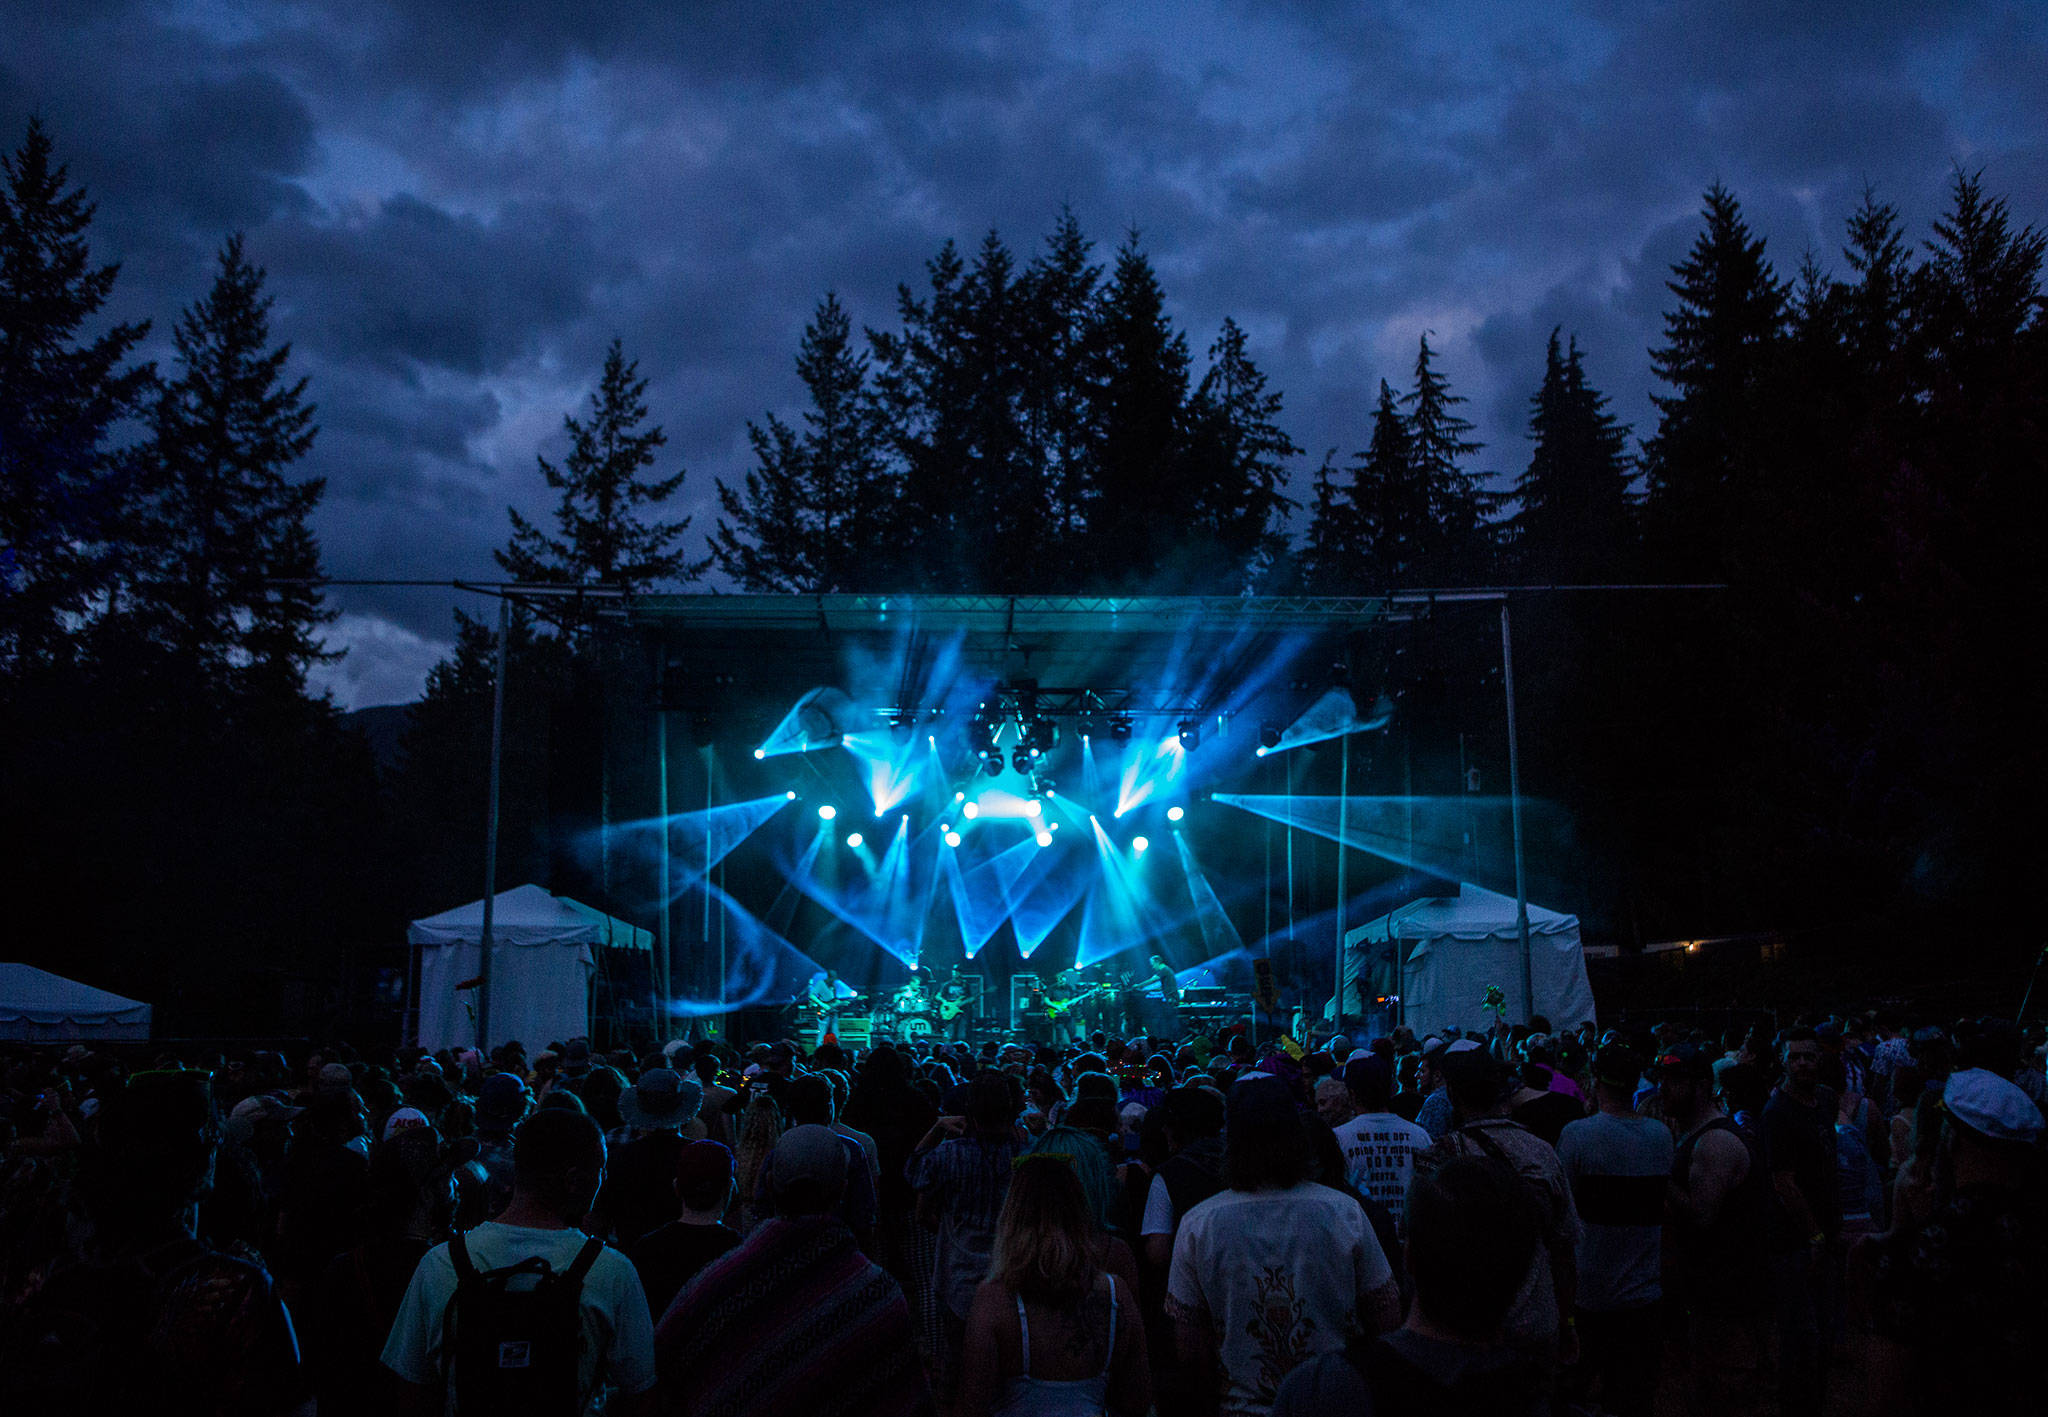 Umphrey's McGee performs during the second day of Summer Meltdown on Friday, Aug. 2, 2019 in Darrington, Wash. (Olivia Vanni / The Herald)